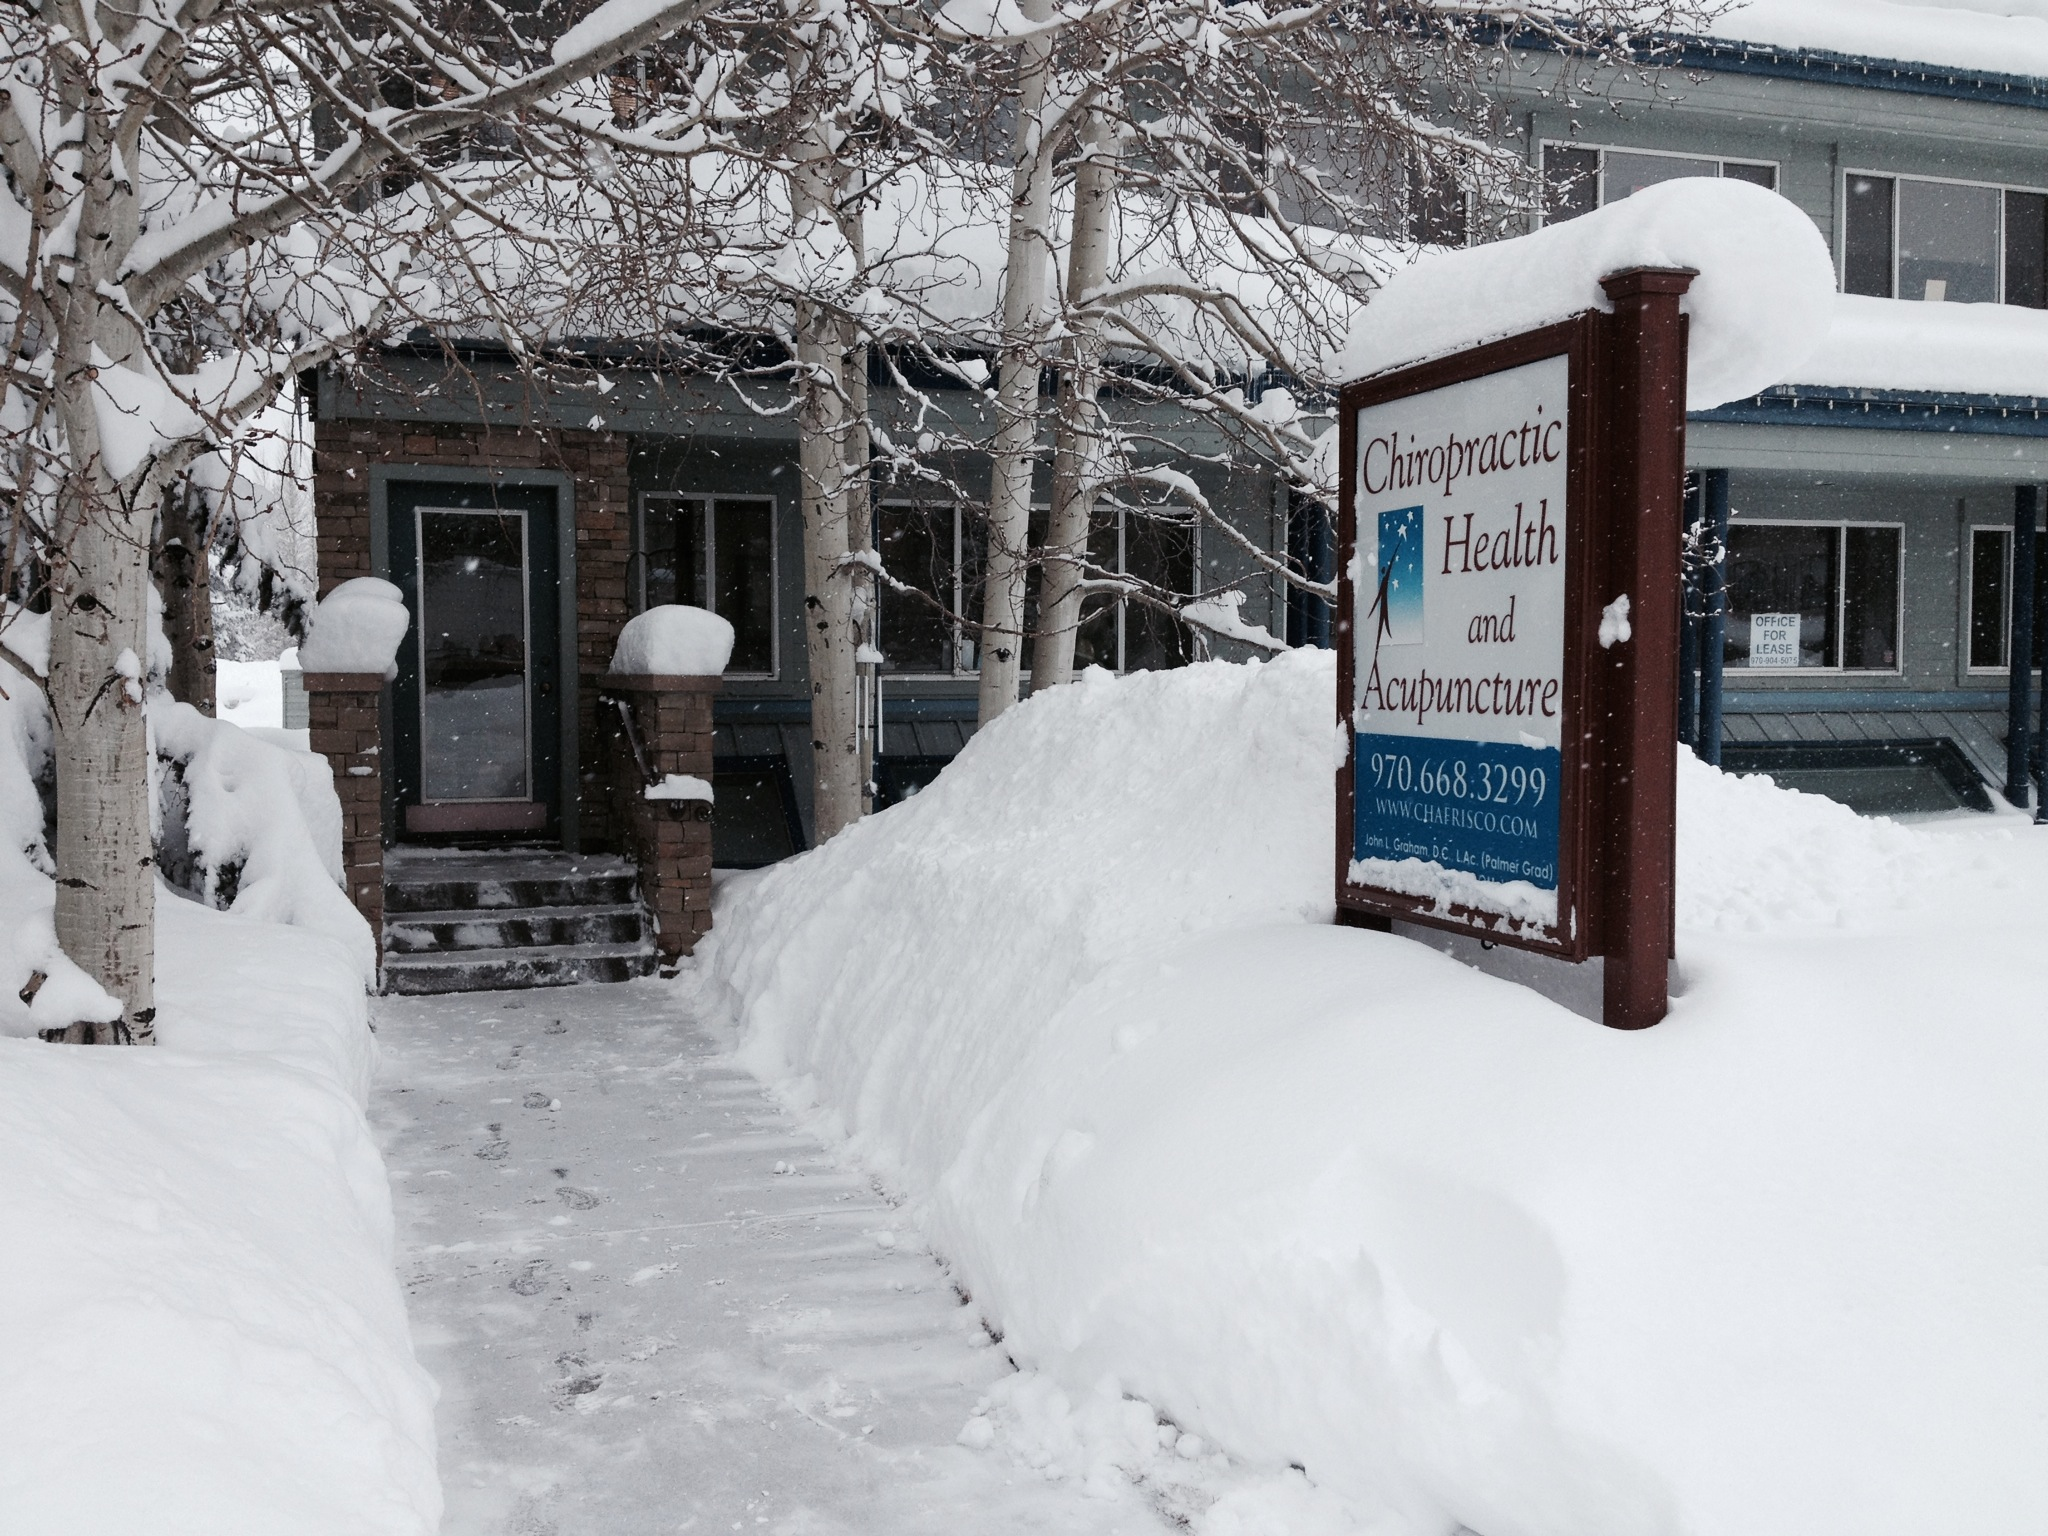 Many feet of snow in front of the chiropractic health and acupuncture office entrance